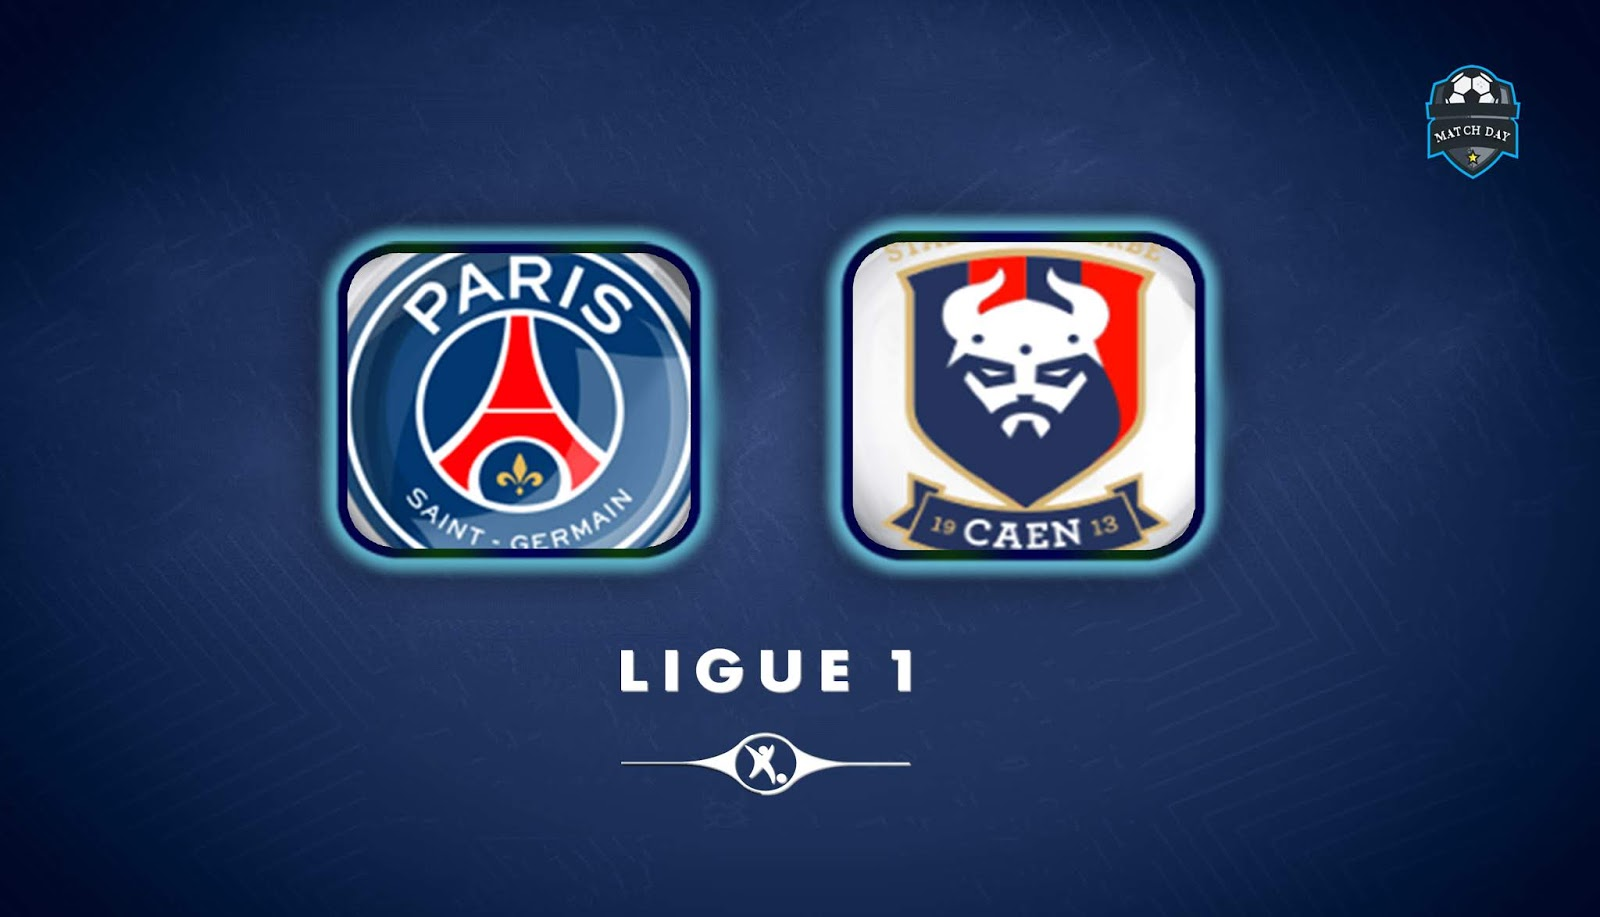 Highlights Paris Saint Germain 3-0 Caen 12/08/2018